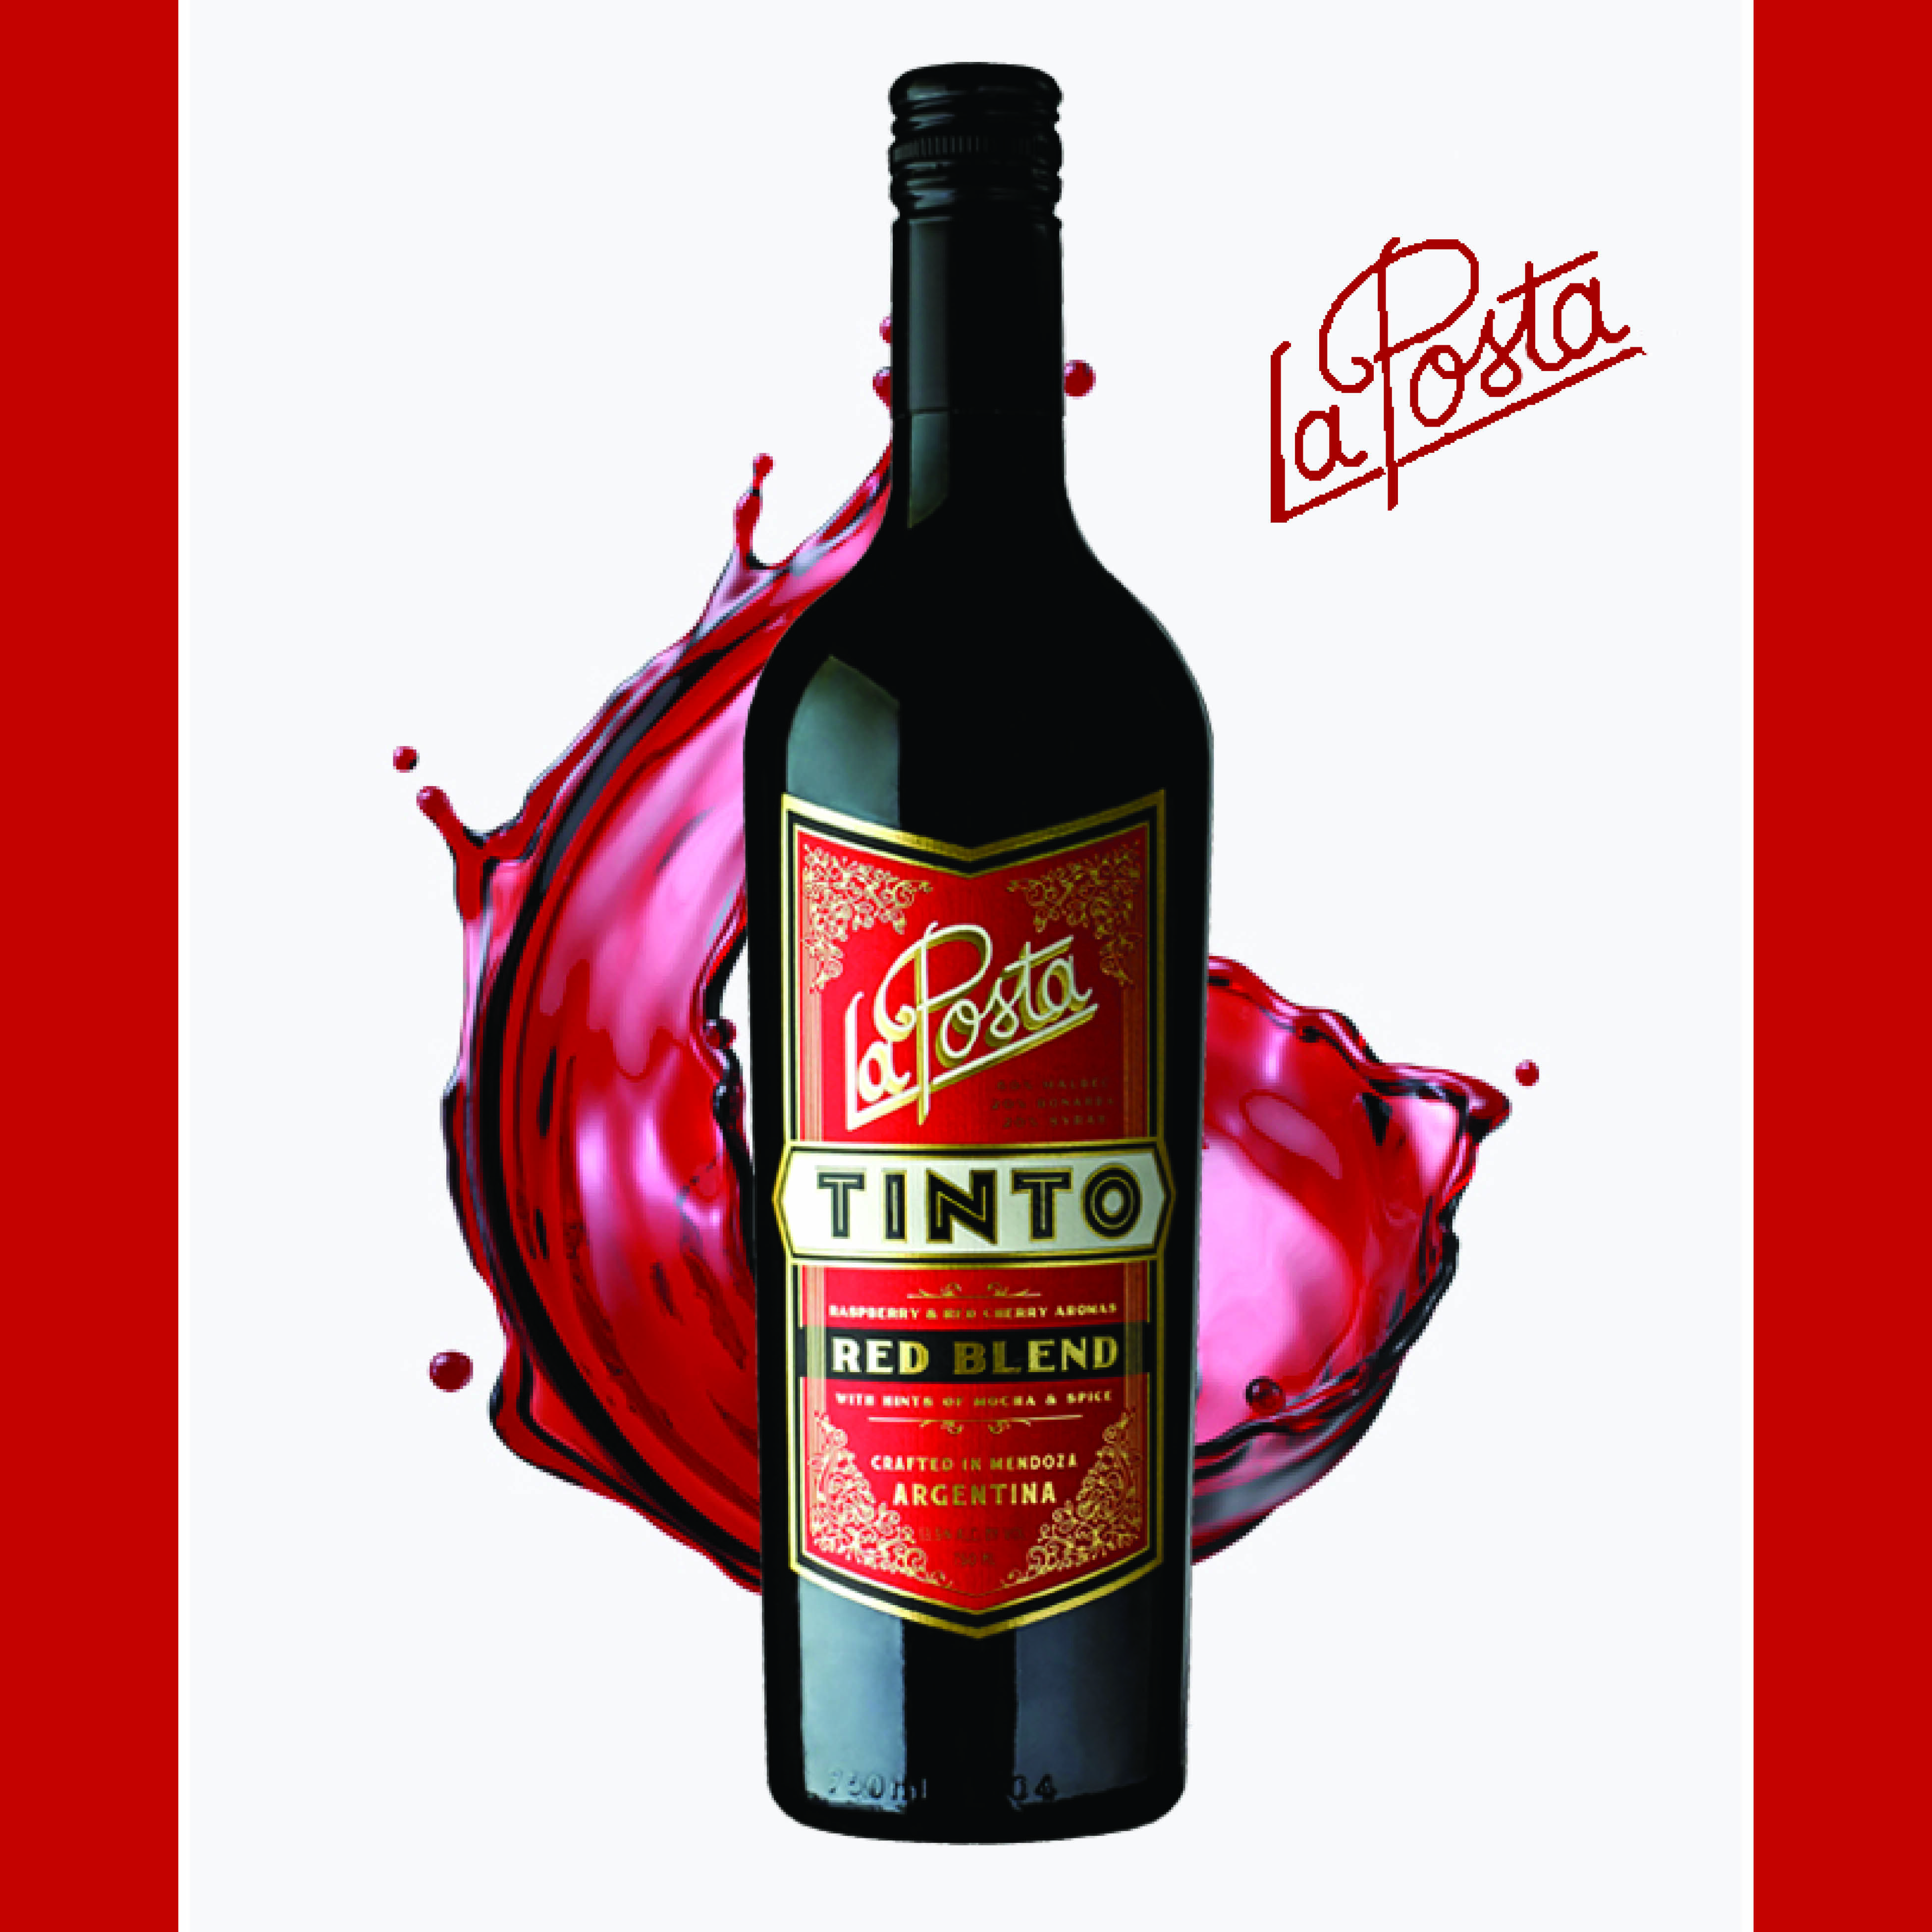 2017 La Posta Tinto Red Blend Big Score Low Price Great Value On This Argentine Red Blend Red Wine Online